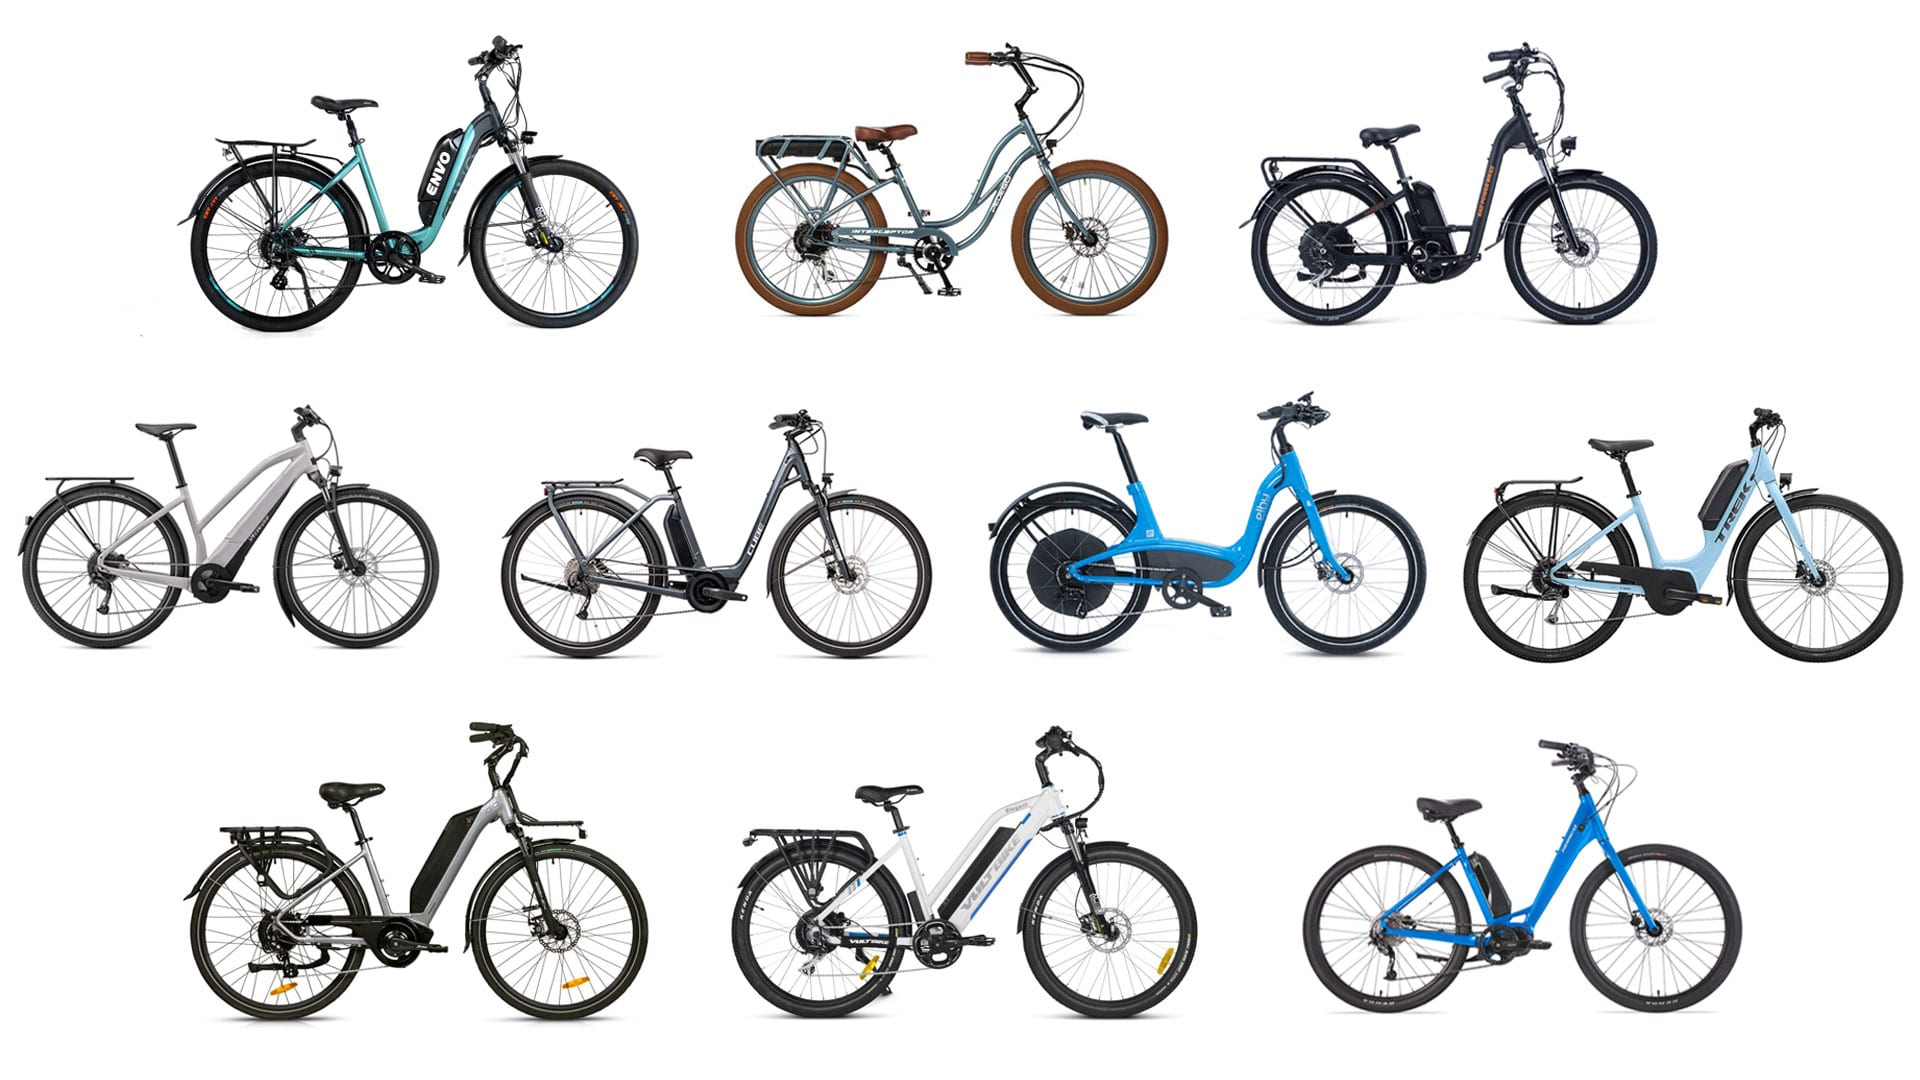 Best step-thru electric bike comparison